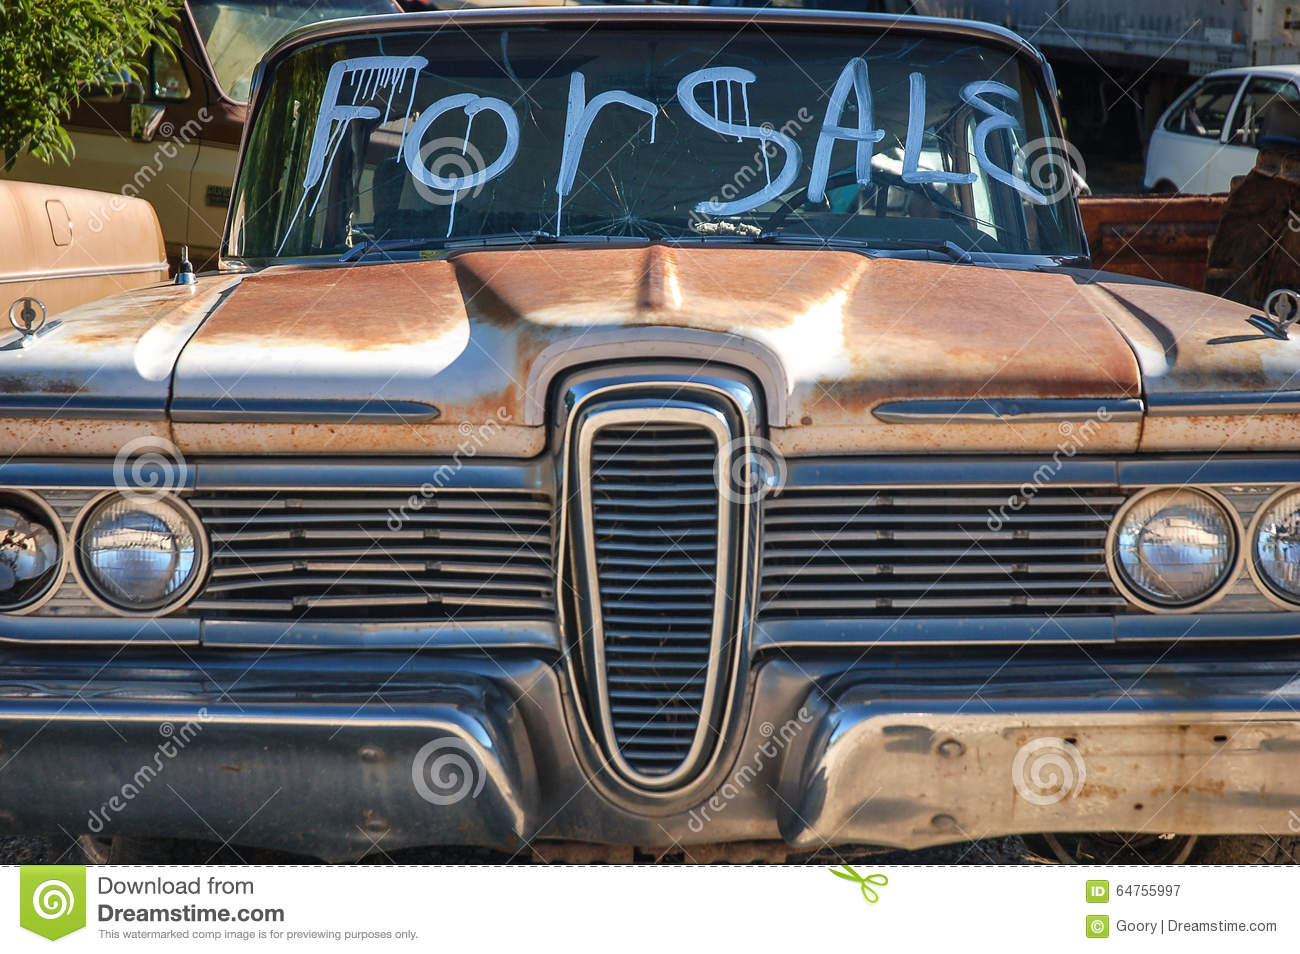 Junkyard Cars For Sale >> Classic Car For Sale Stock Image Image Of Market Traffic